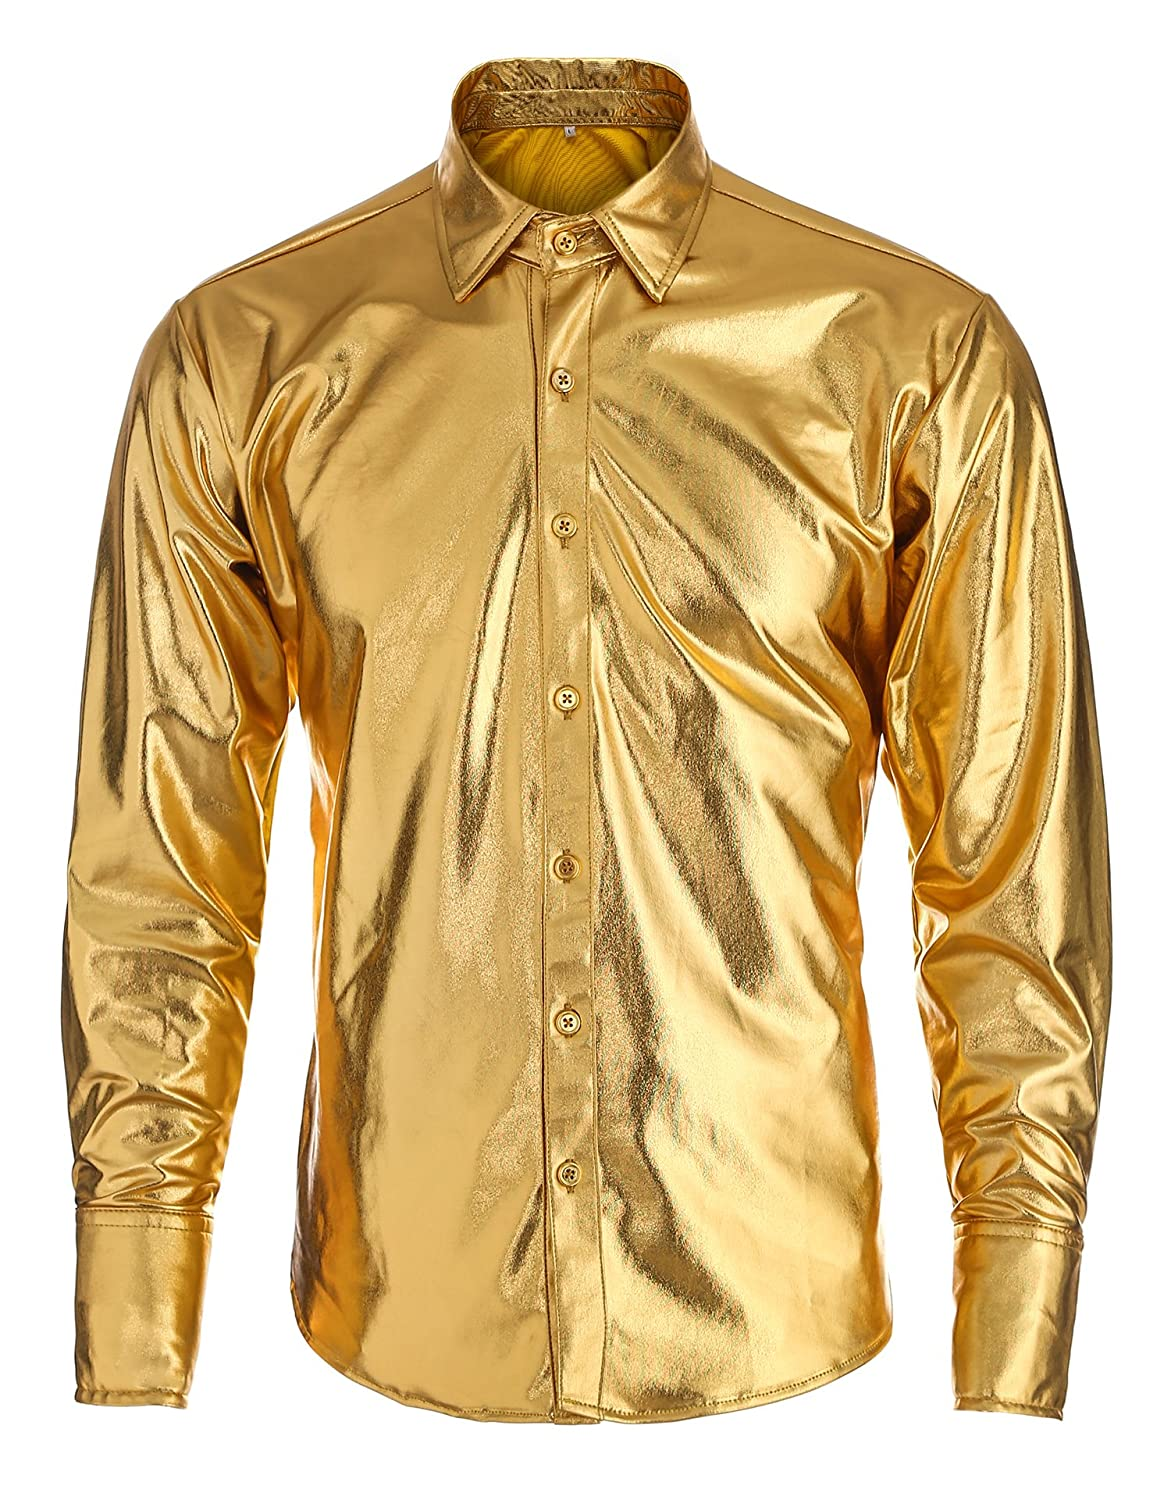 1960s – 70s Mens Shirts- Disco Shirts, Hippie Shirts Idopy Mens Trend Nightclub Coating Metallic Button Down Shirts $16.89 AT vintagedancer.com